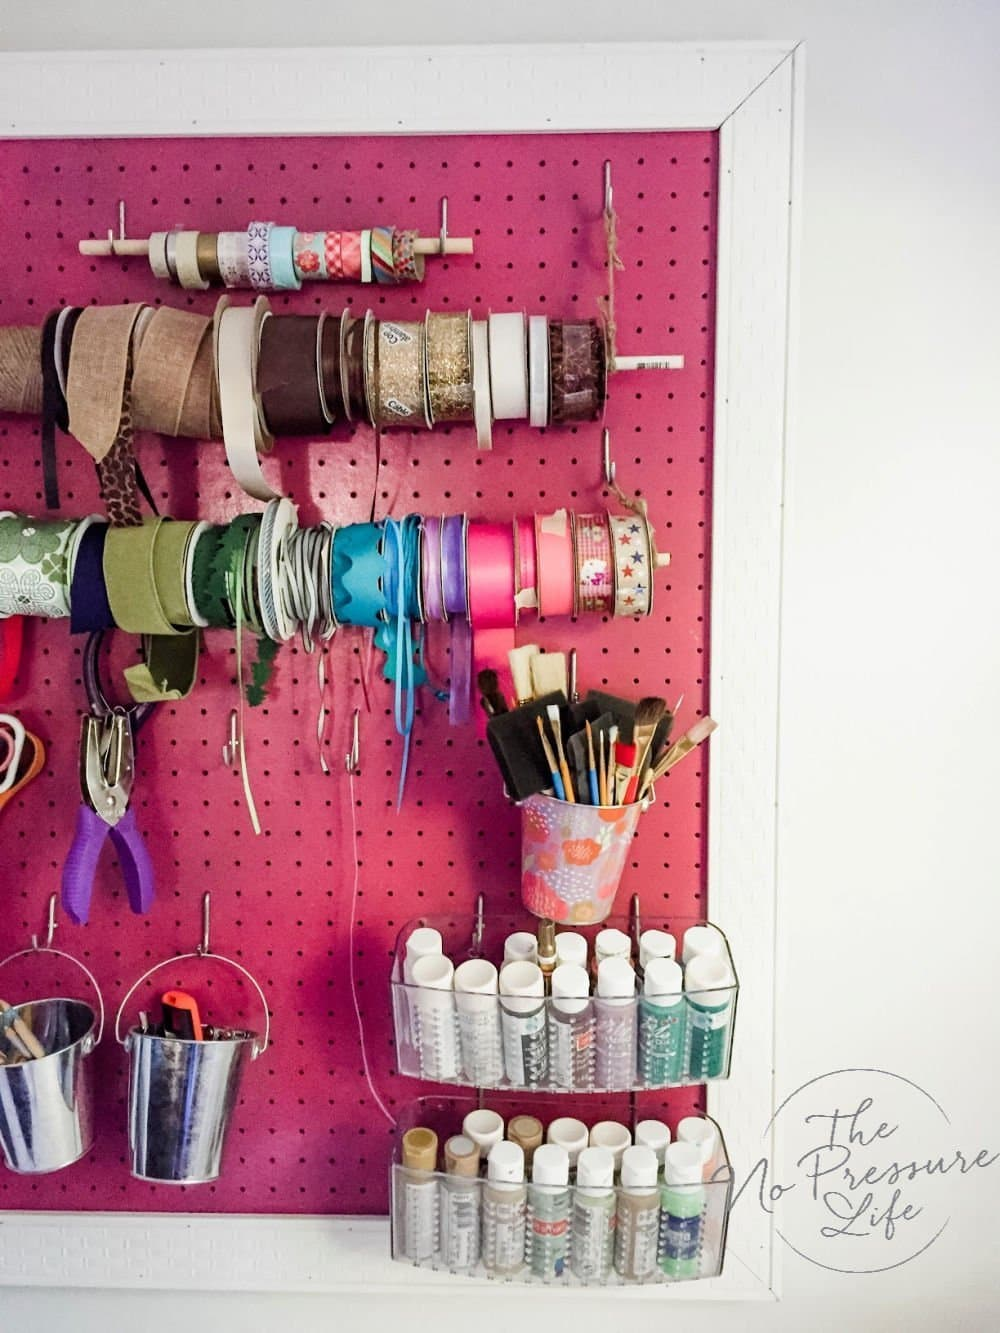 Easy DIY spray paint projects - spray painting peg board